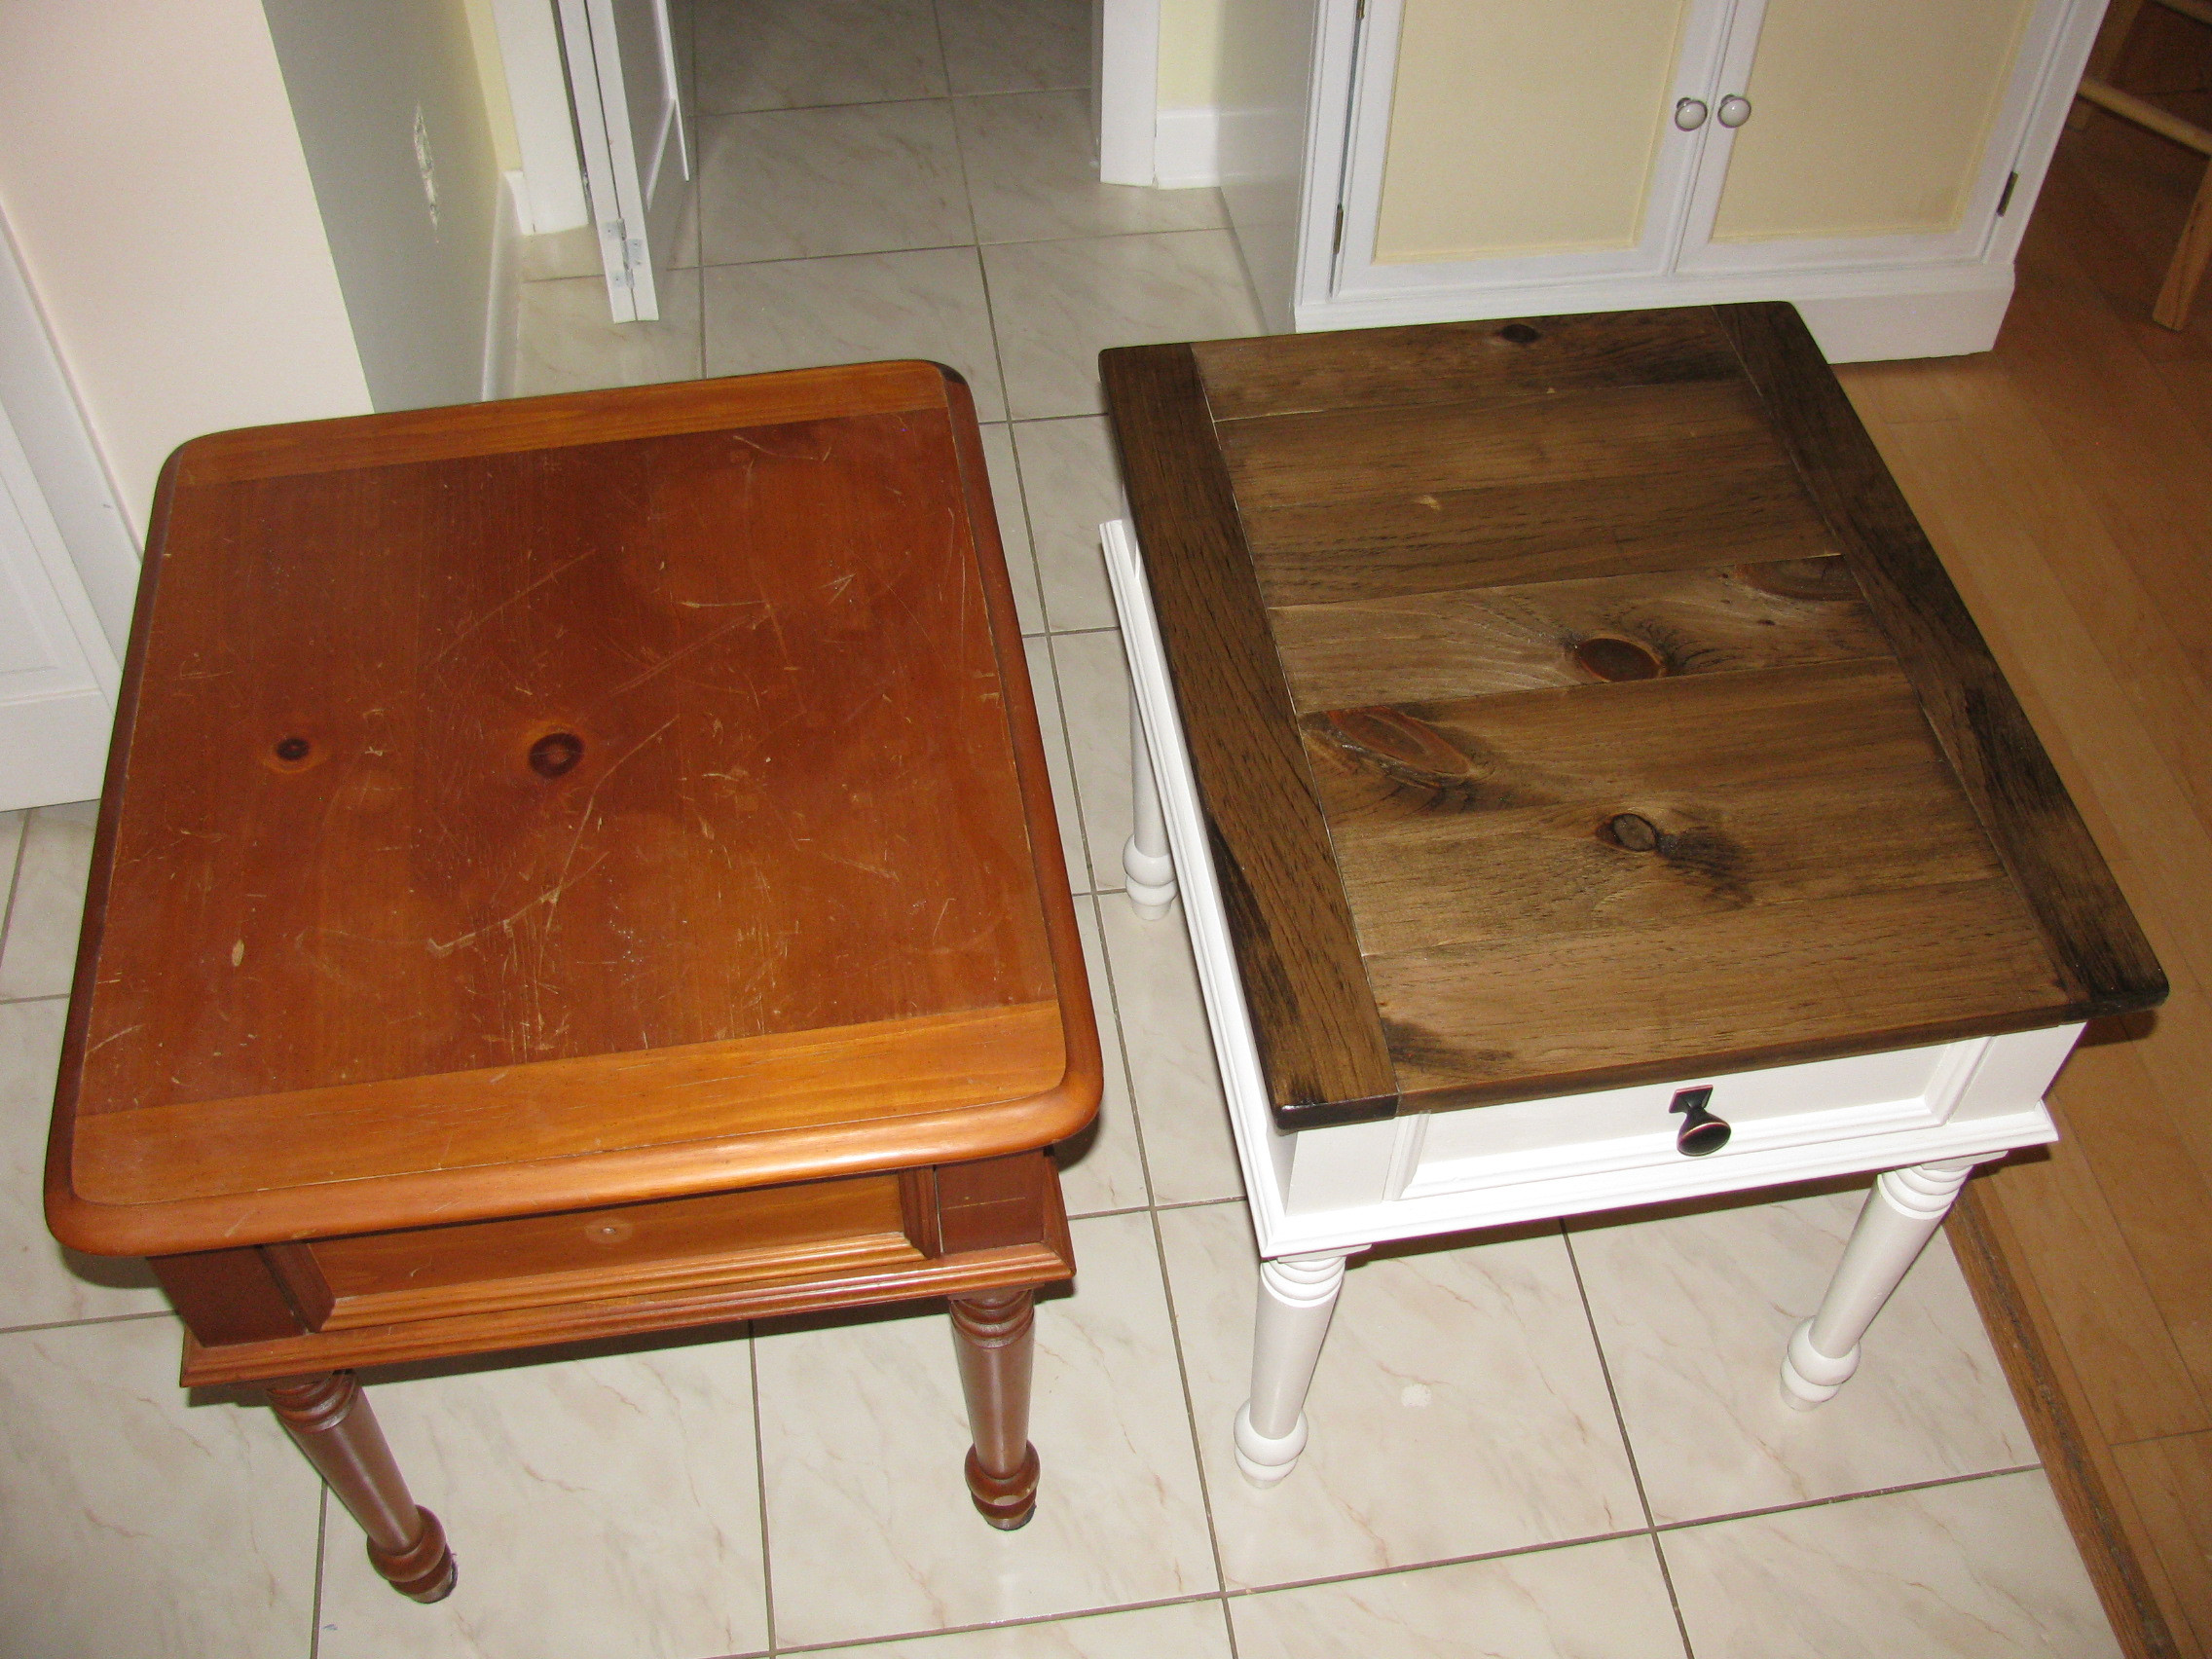 Best ideas about Refinishing Coffee Table Ideas . Save or Pin Refinish Coffee Table writehookstudio Now.